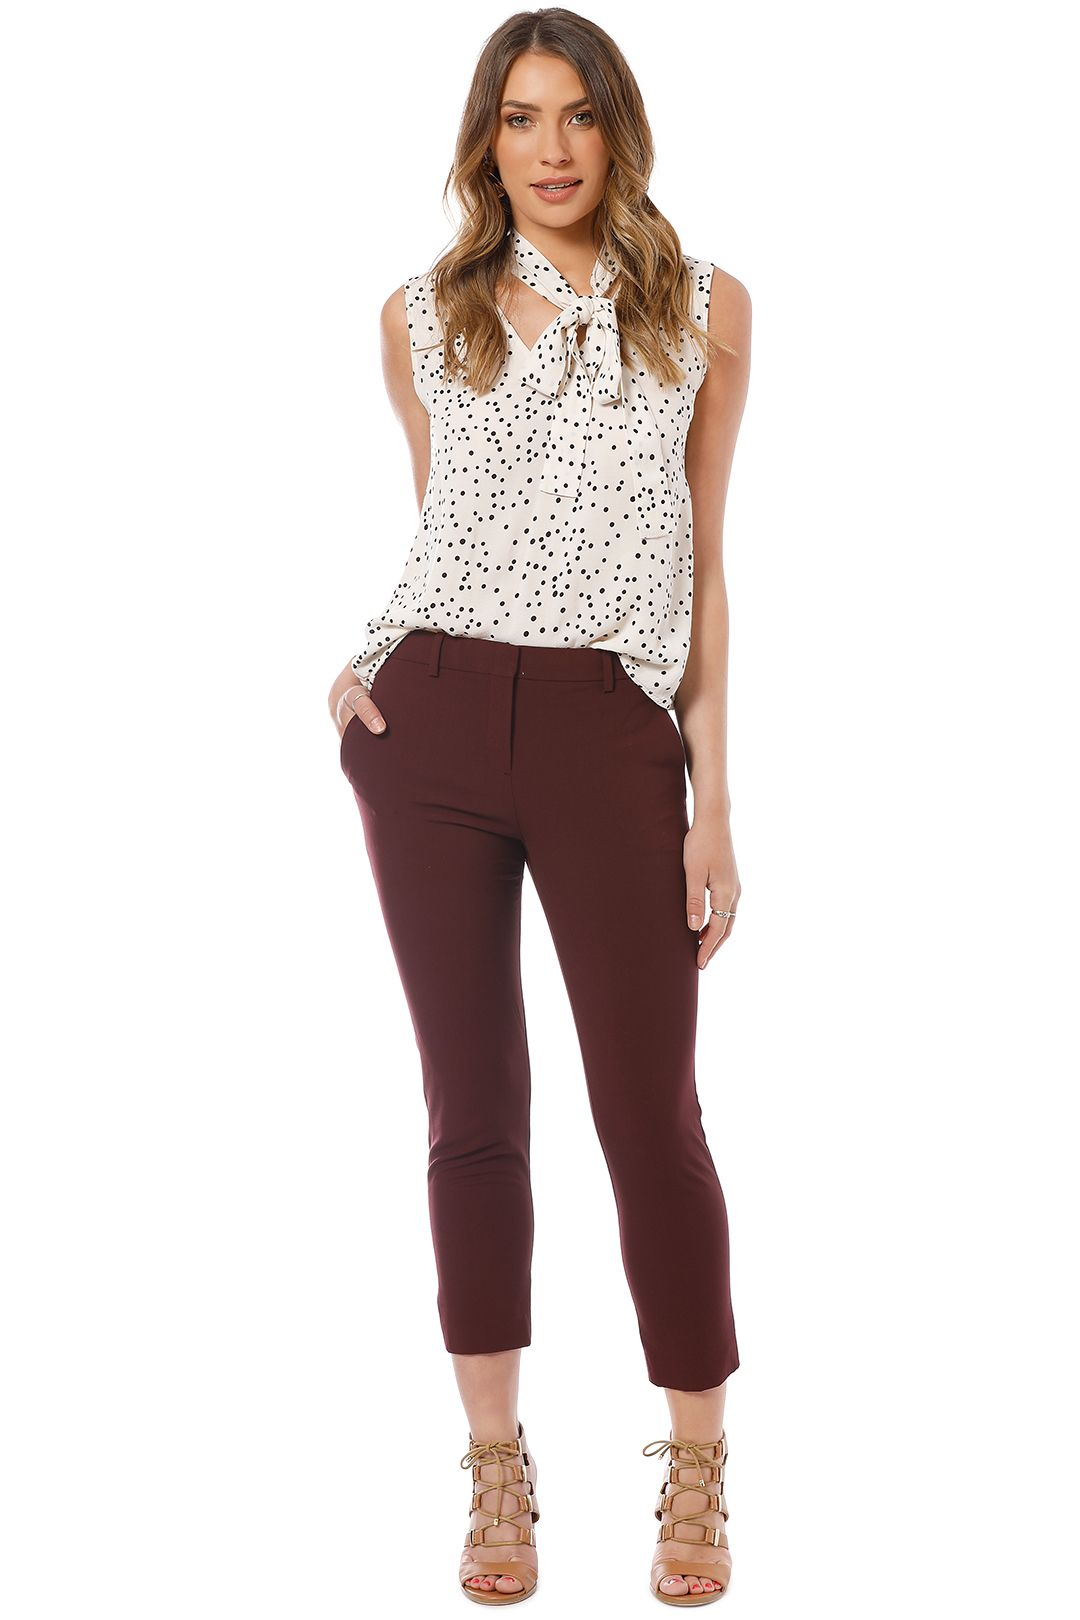 Theory - Essential Pant - Burgundy - Front